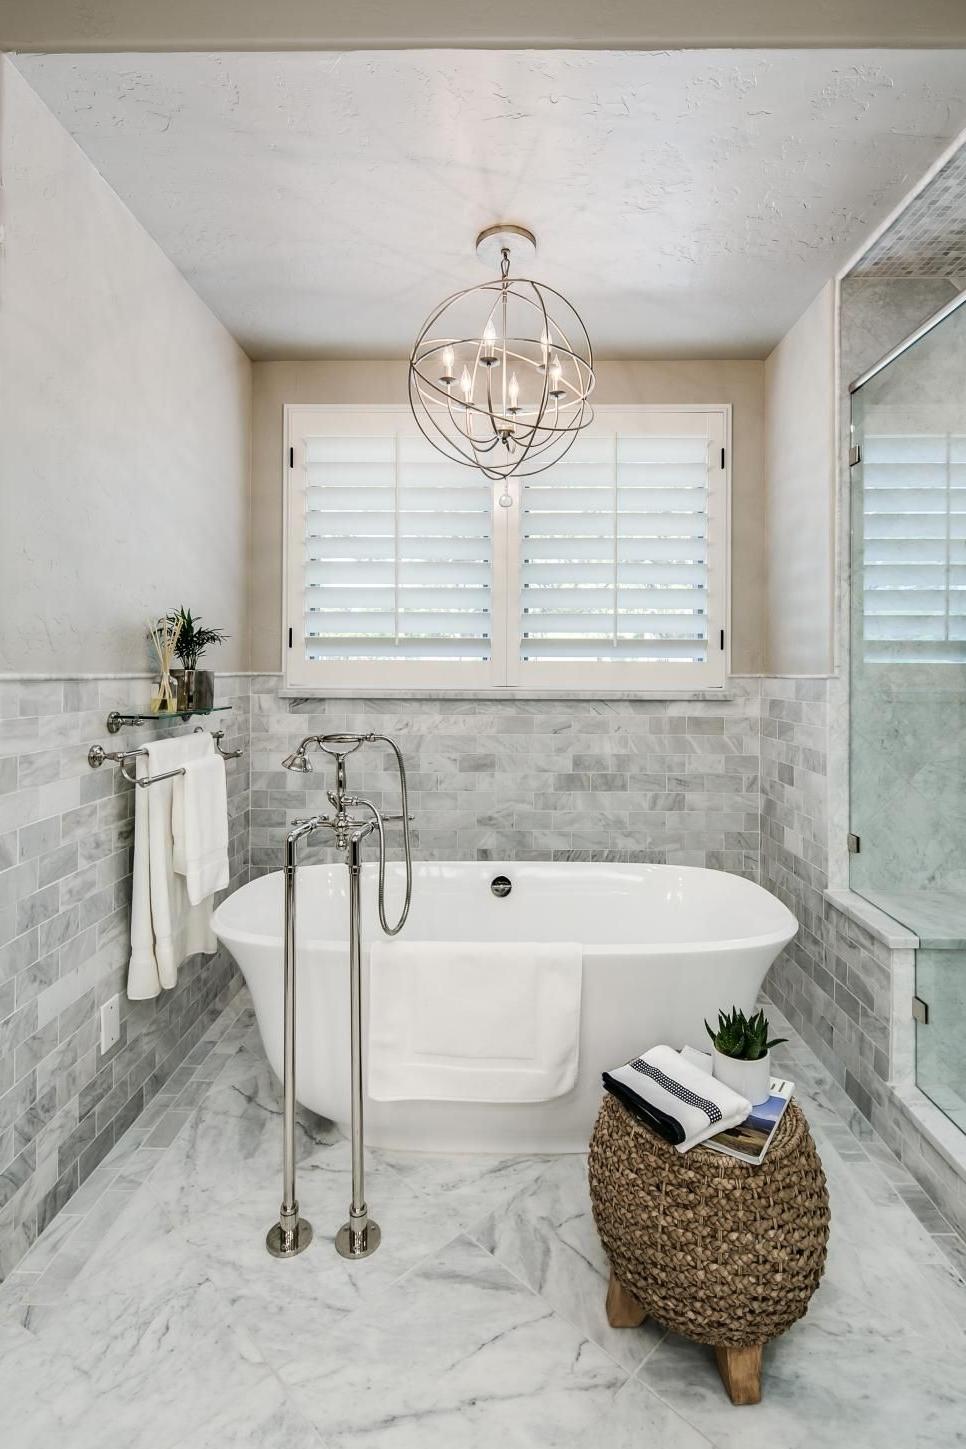 Modern Bathroom Chandeliers With Regard To Favorite A Metal Orb Chandelier Is Centered Above The Freestanding Tub In (View 12 of 20)